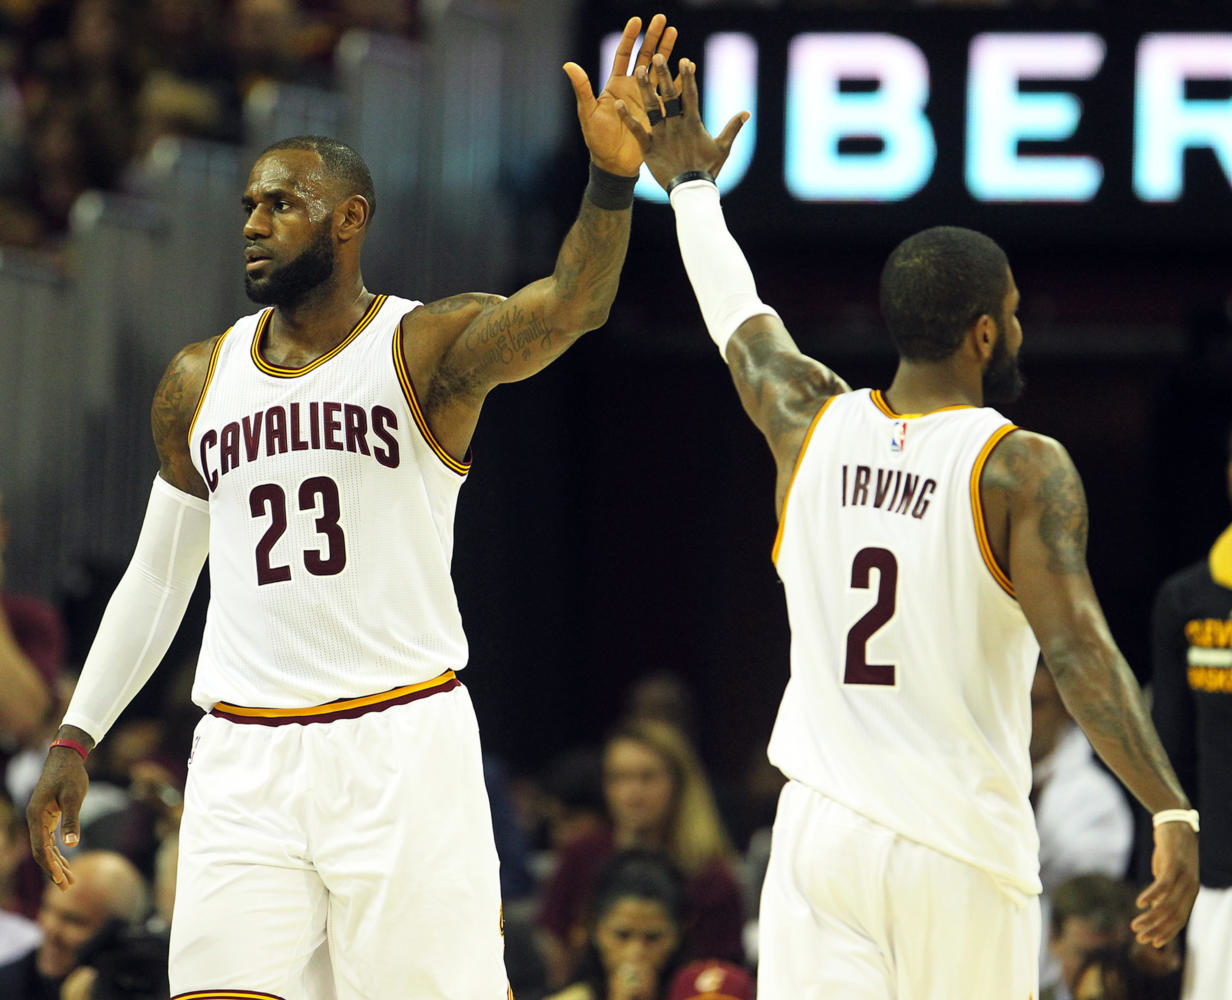 Cleveland Cavaliers forward LeBron James celebrates a foul with Kyrie Irving during the third quarter against the Boston Celtics in Game 4 of the Eastern Conference finals on Tuesday, May 23, 2017 at Quicken Loans Arena in Cleveland, Ohio. (Leah Klafczynski/Akron Beacon Journal/TNS)